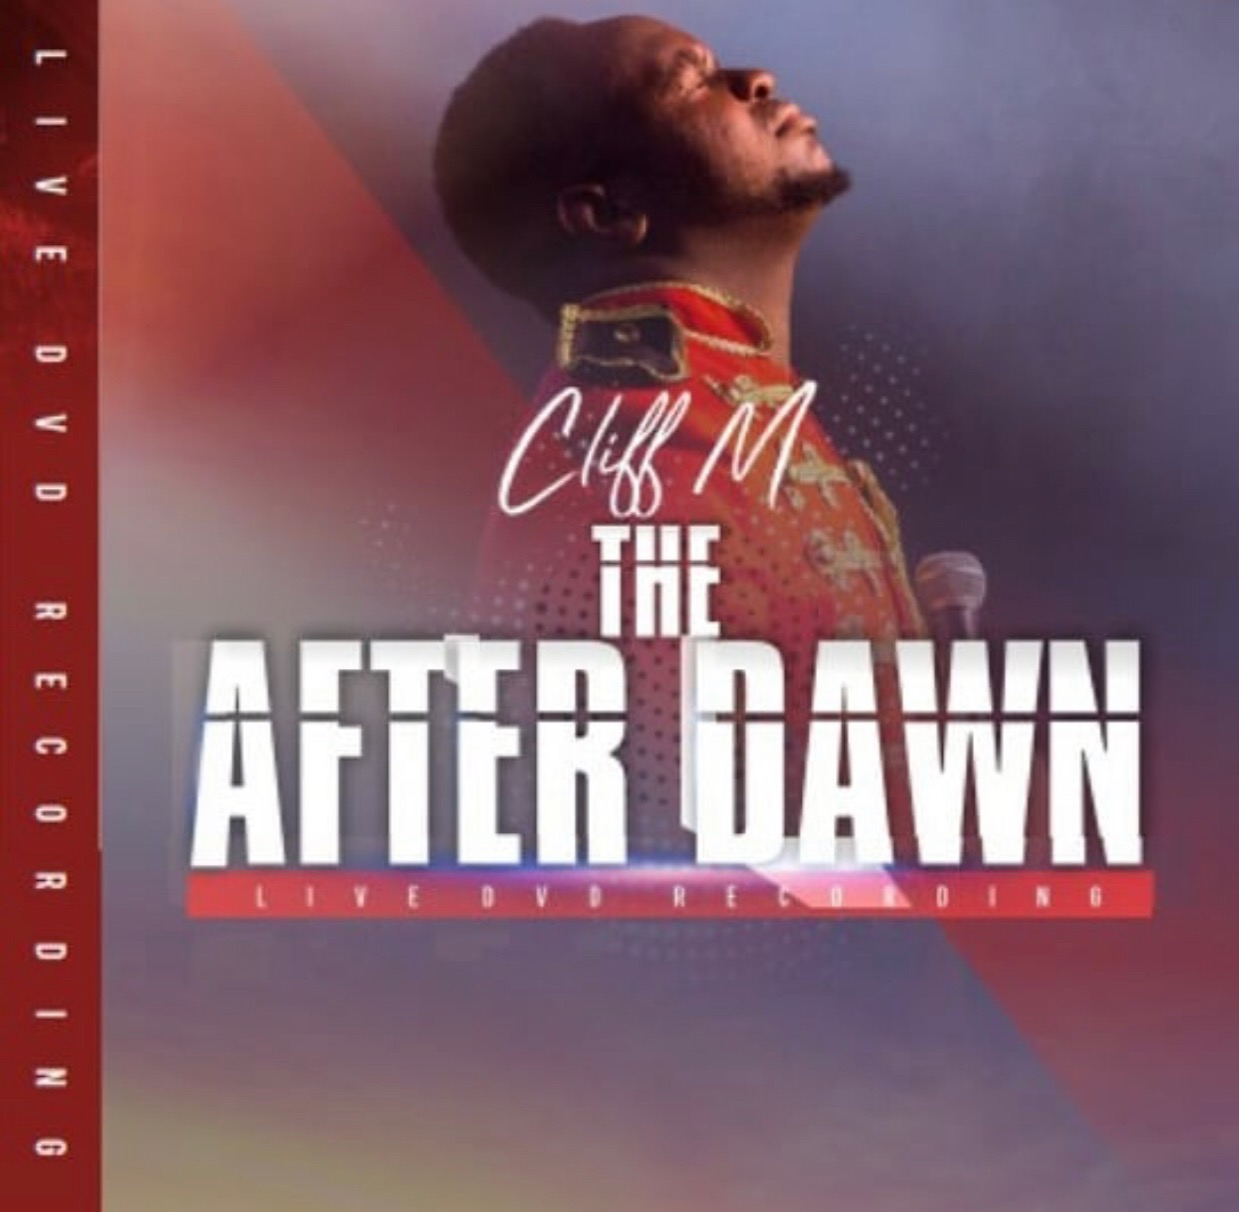 Exciting news! The Afterdawn Live